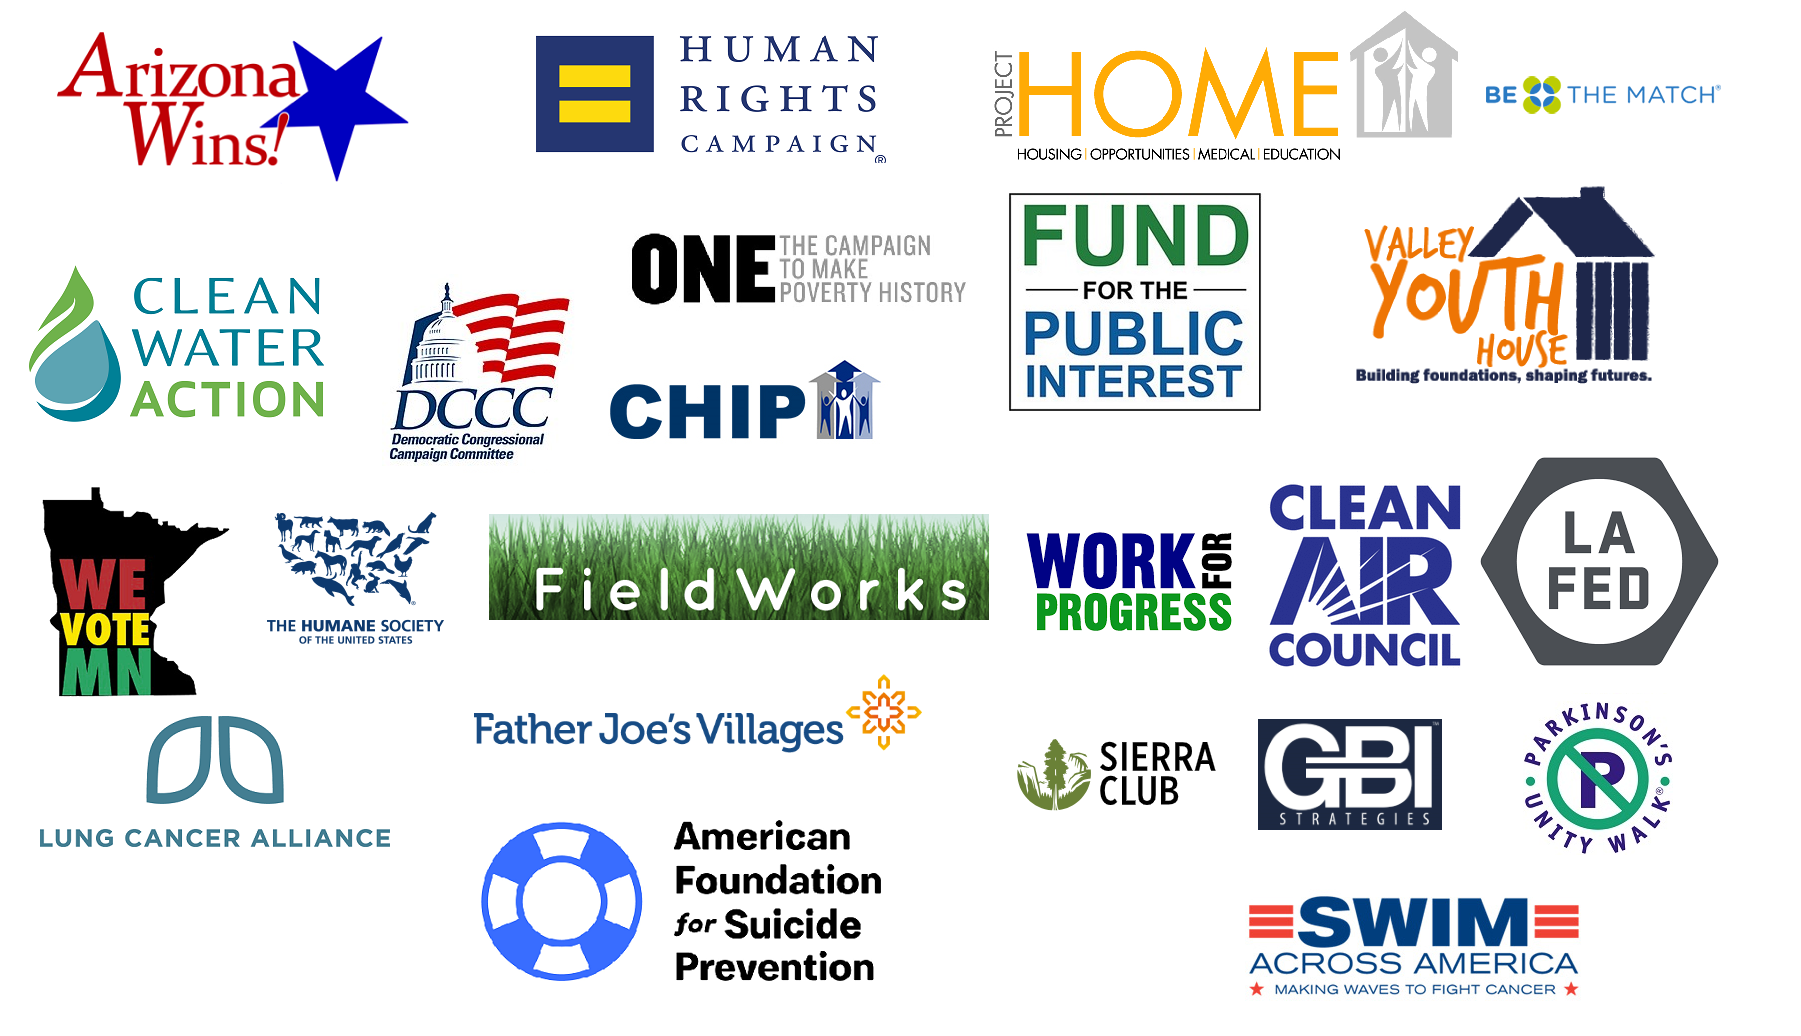 Arizona Wins, HRC, Human Rights Campaign, Project Home, Clean Water Action, DCC, One Campaign, Fund for the Public Interest, Work for Progress, Valley Youth House, The Humane Society, Cat Brooks for Oakland, Work for Progress, Clean Air Council